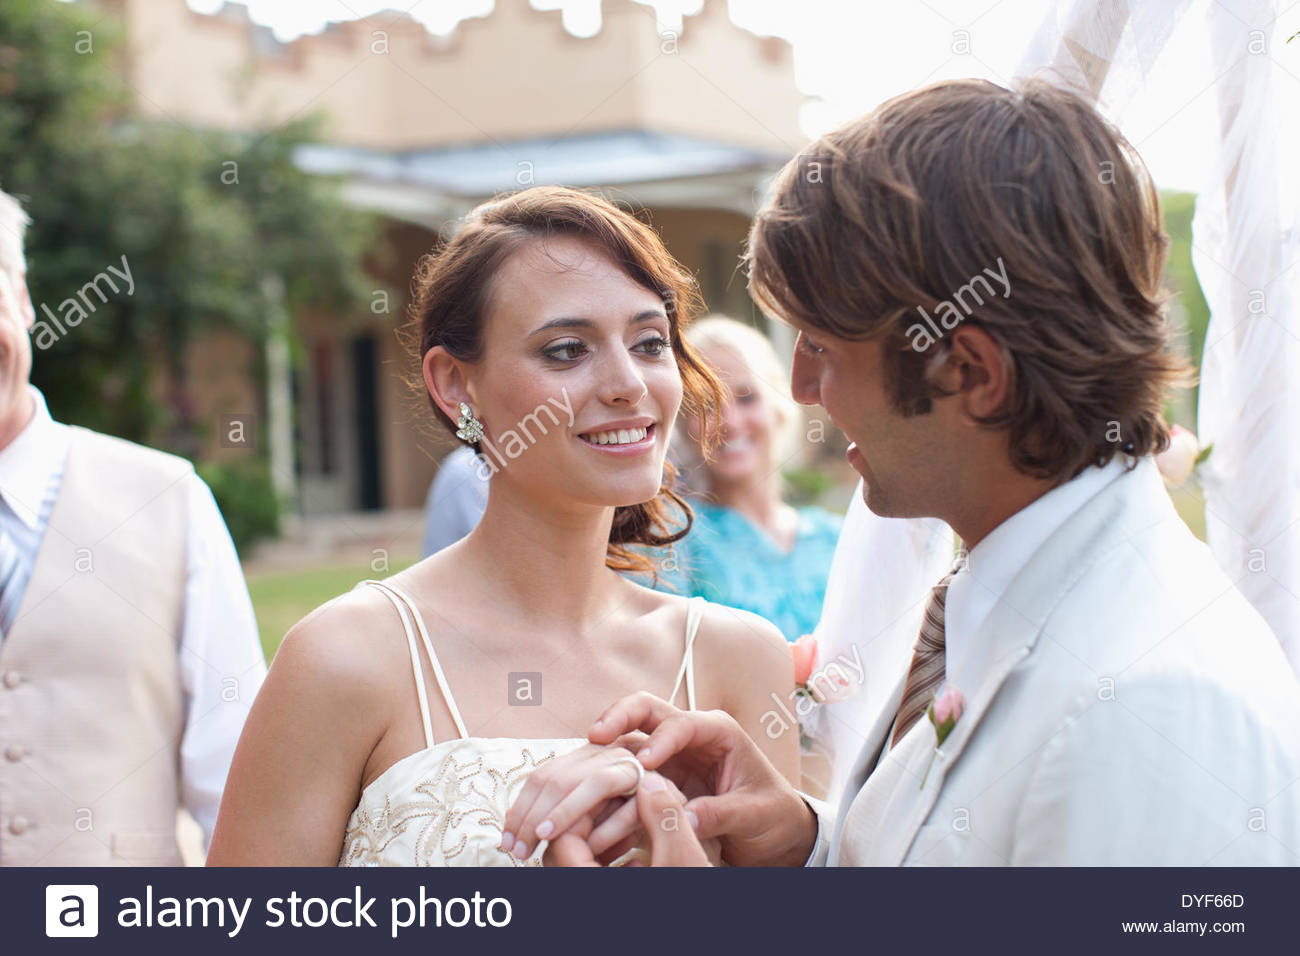 Groom putting ring on brideÂ's finger - Stock Image